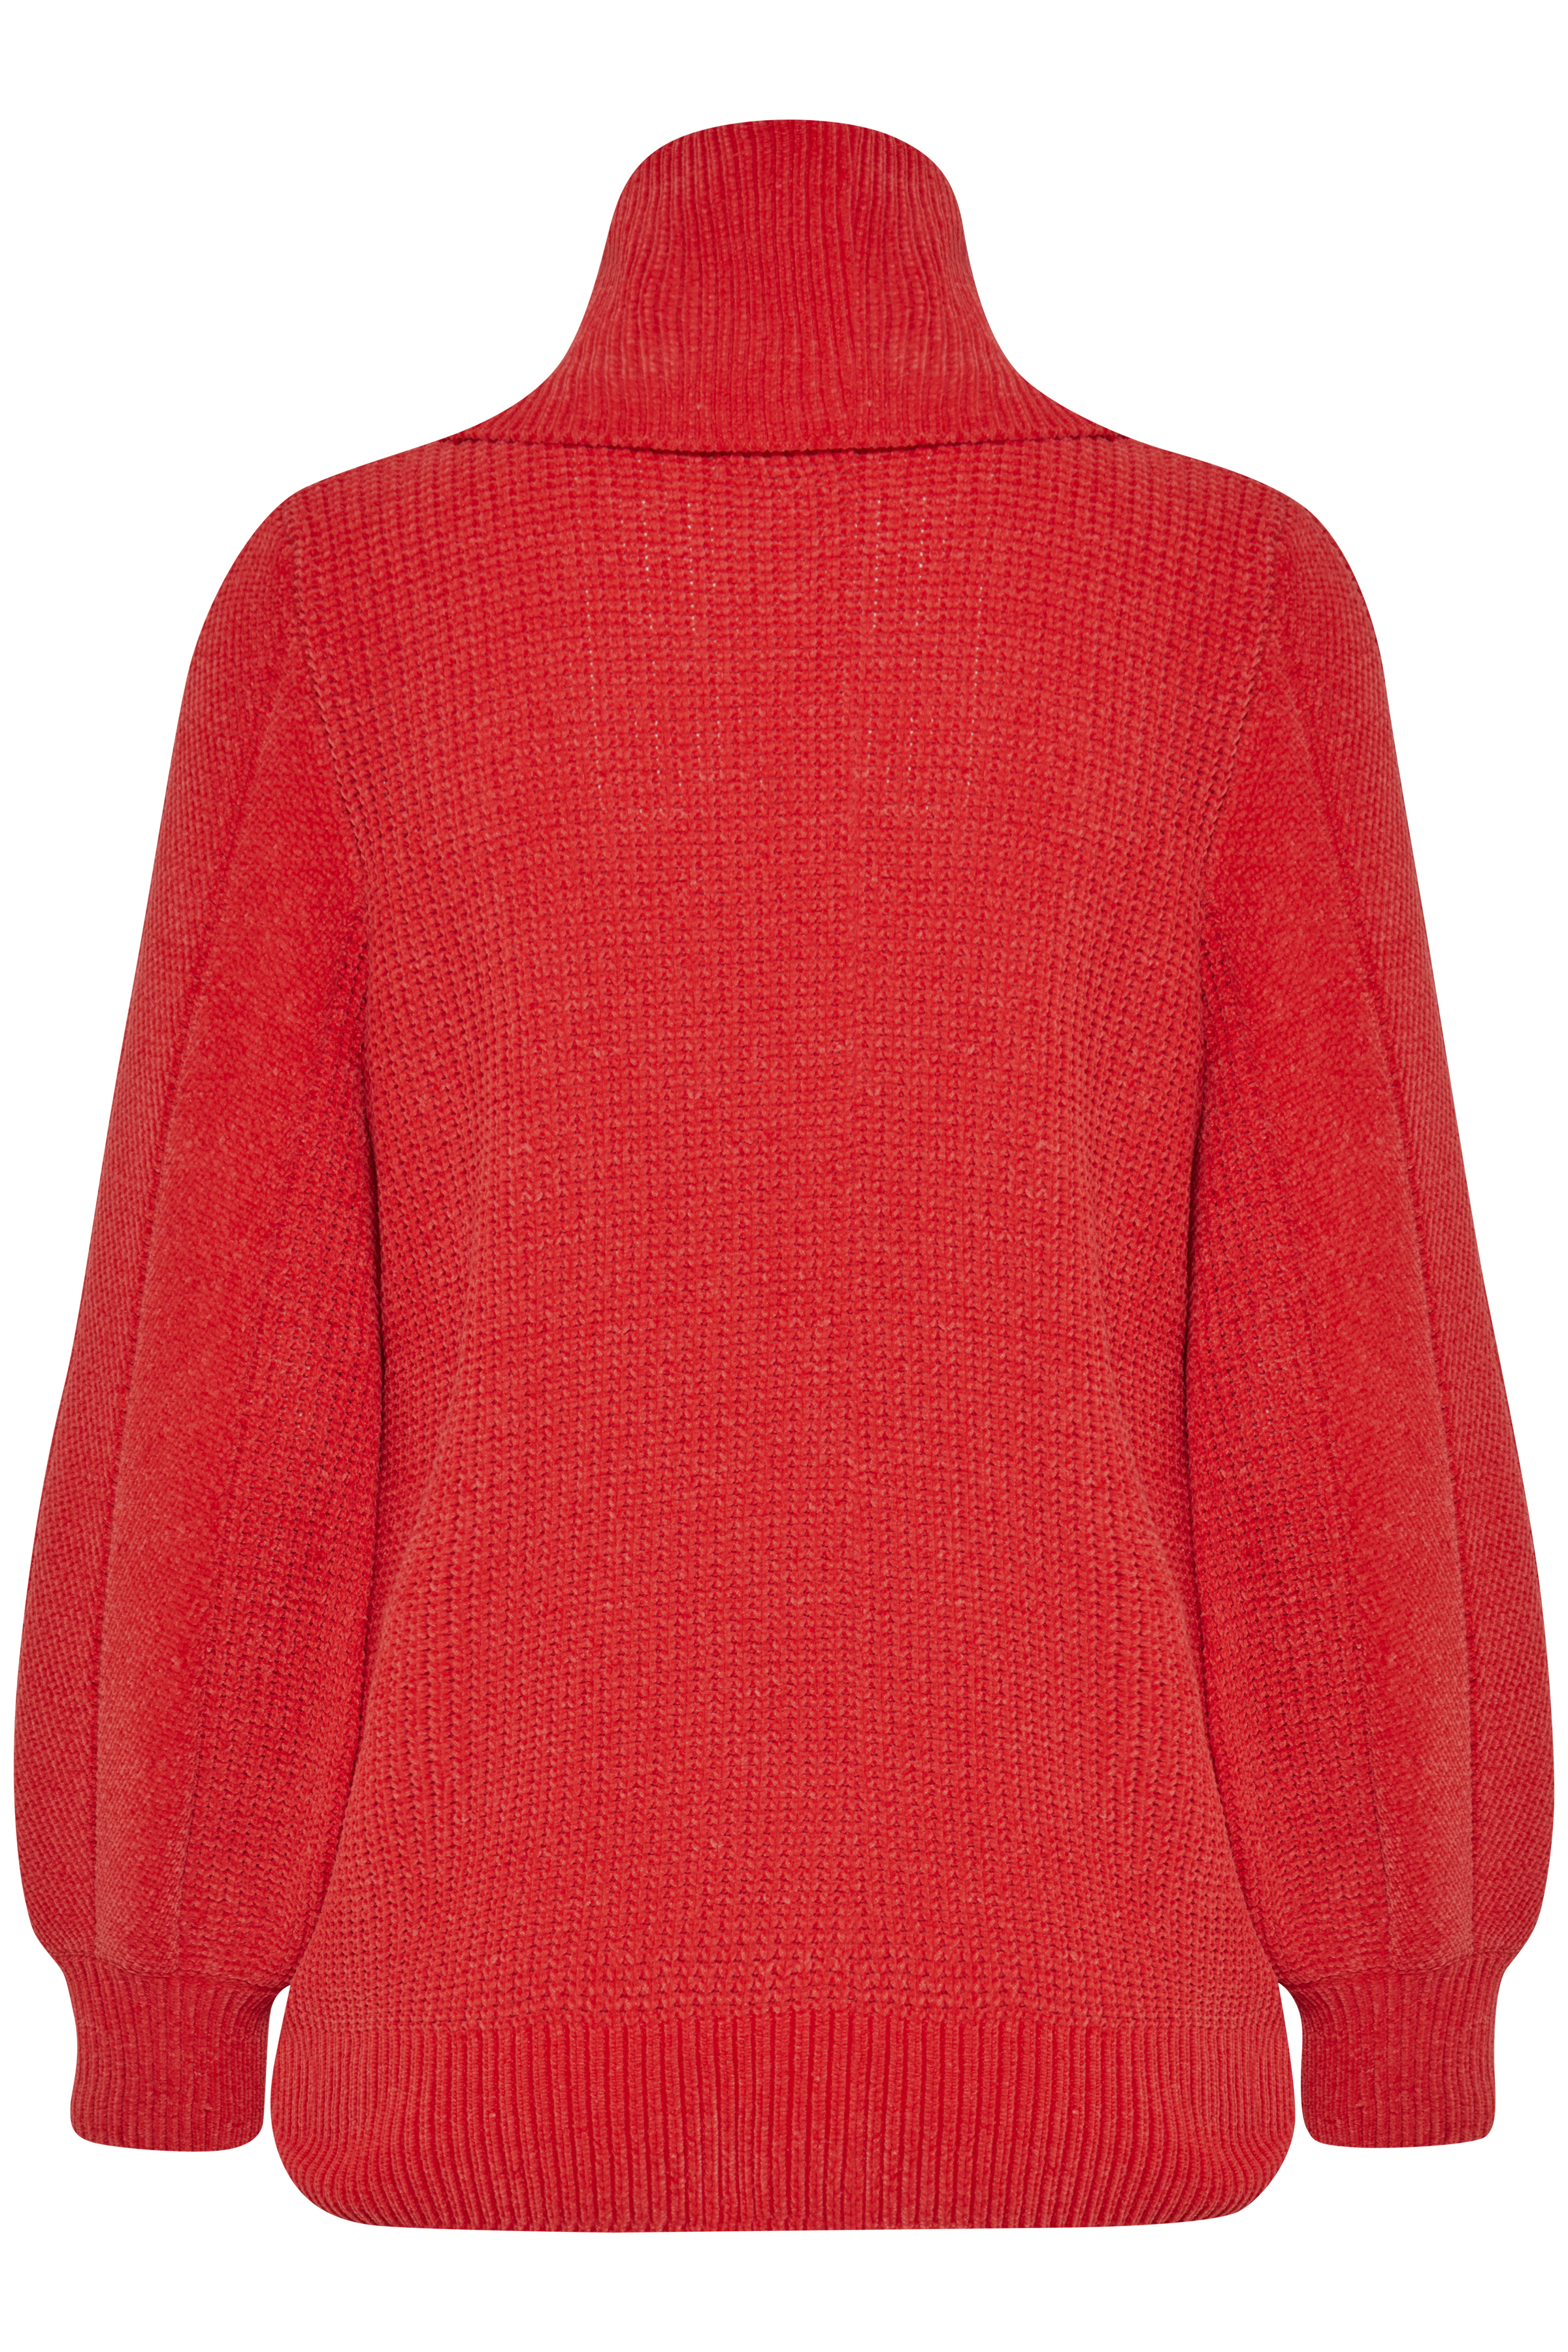 Chinese Red Pullover van b.young – Koop Chinese Red Pullover hier van size XS-XXL